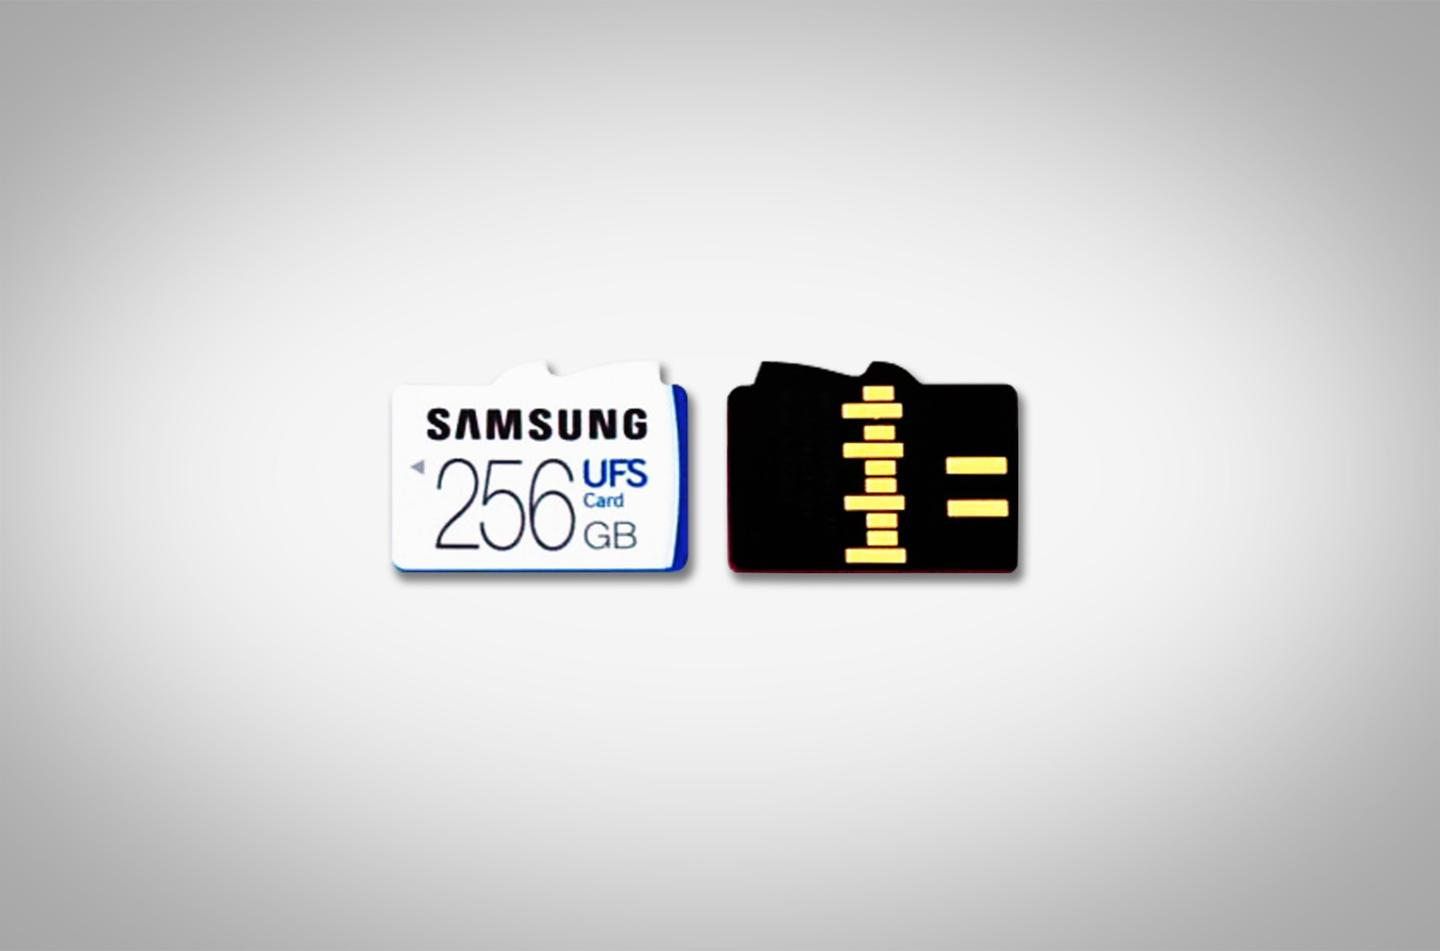 The front and back of the Samsung UFScard